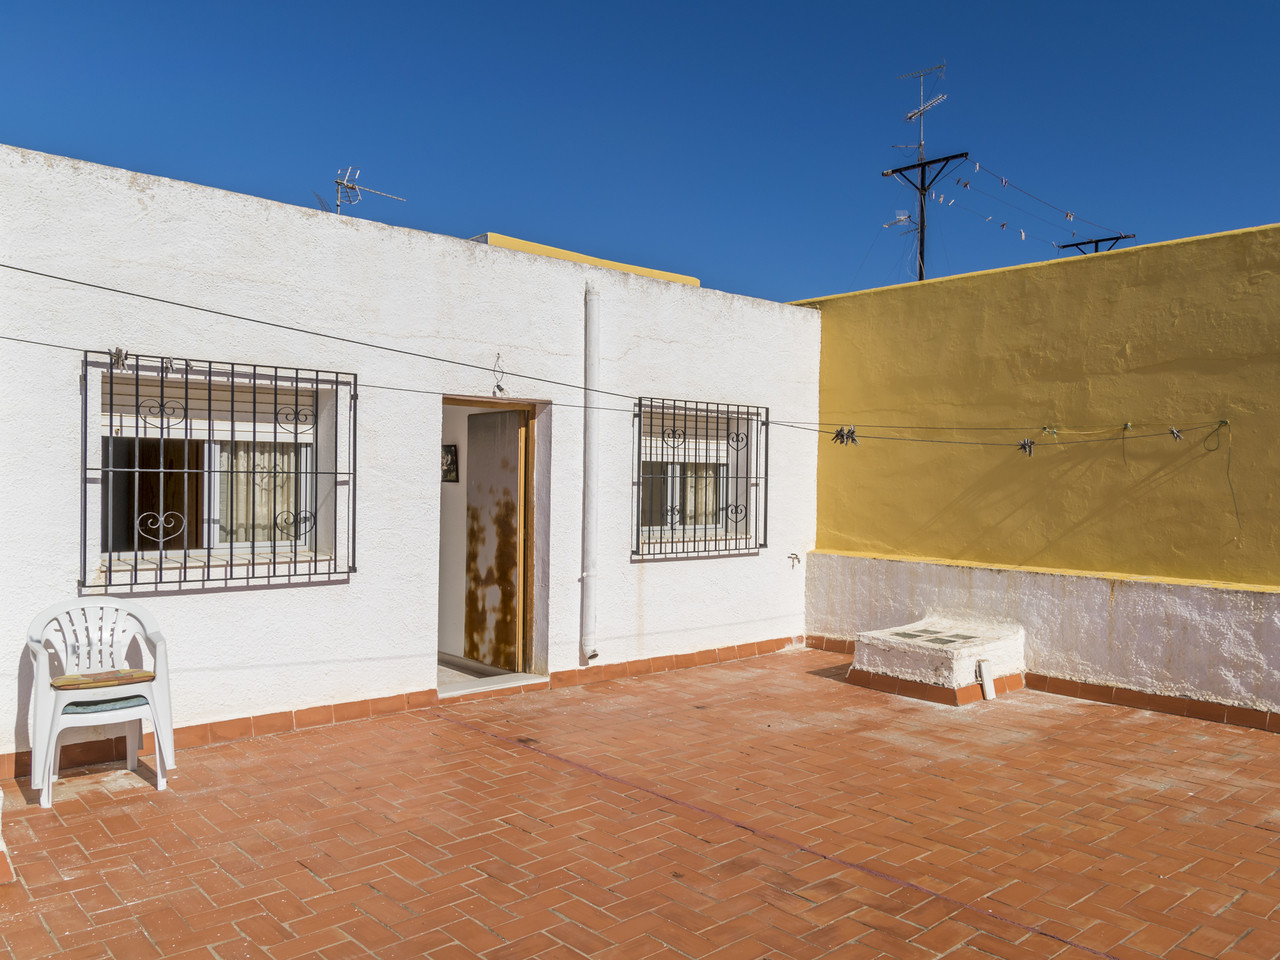 Propery For Sale in Turre, Spain image 16